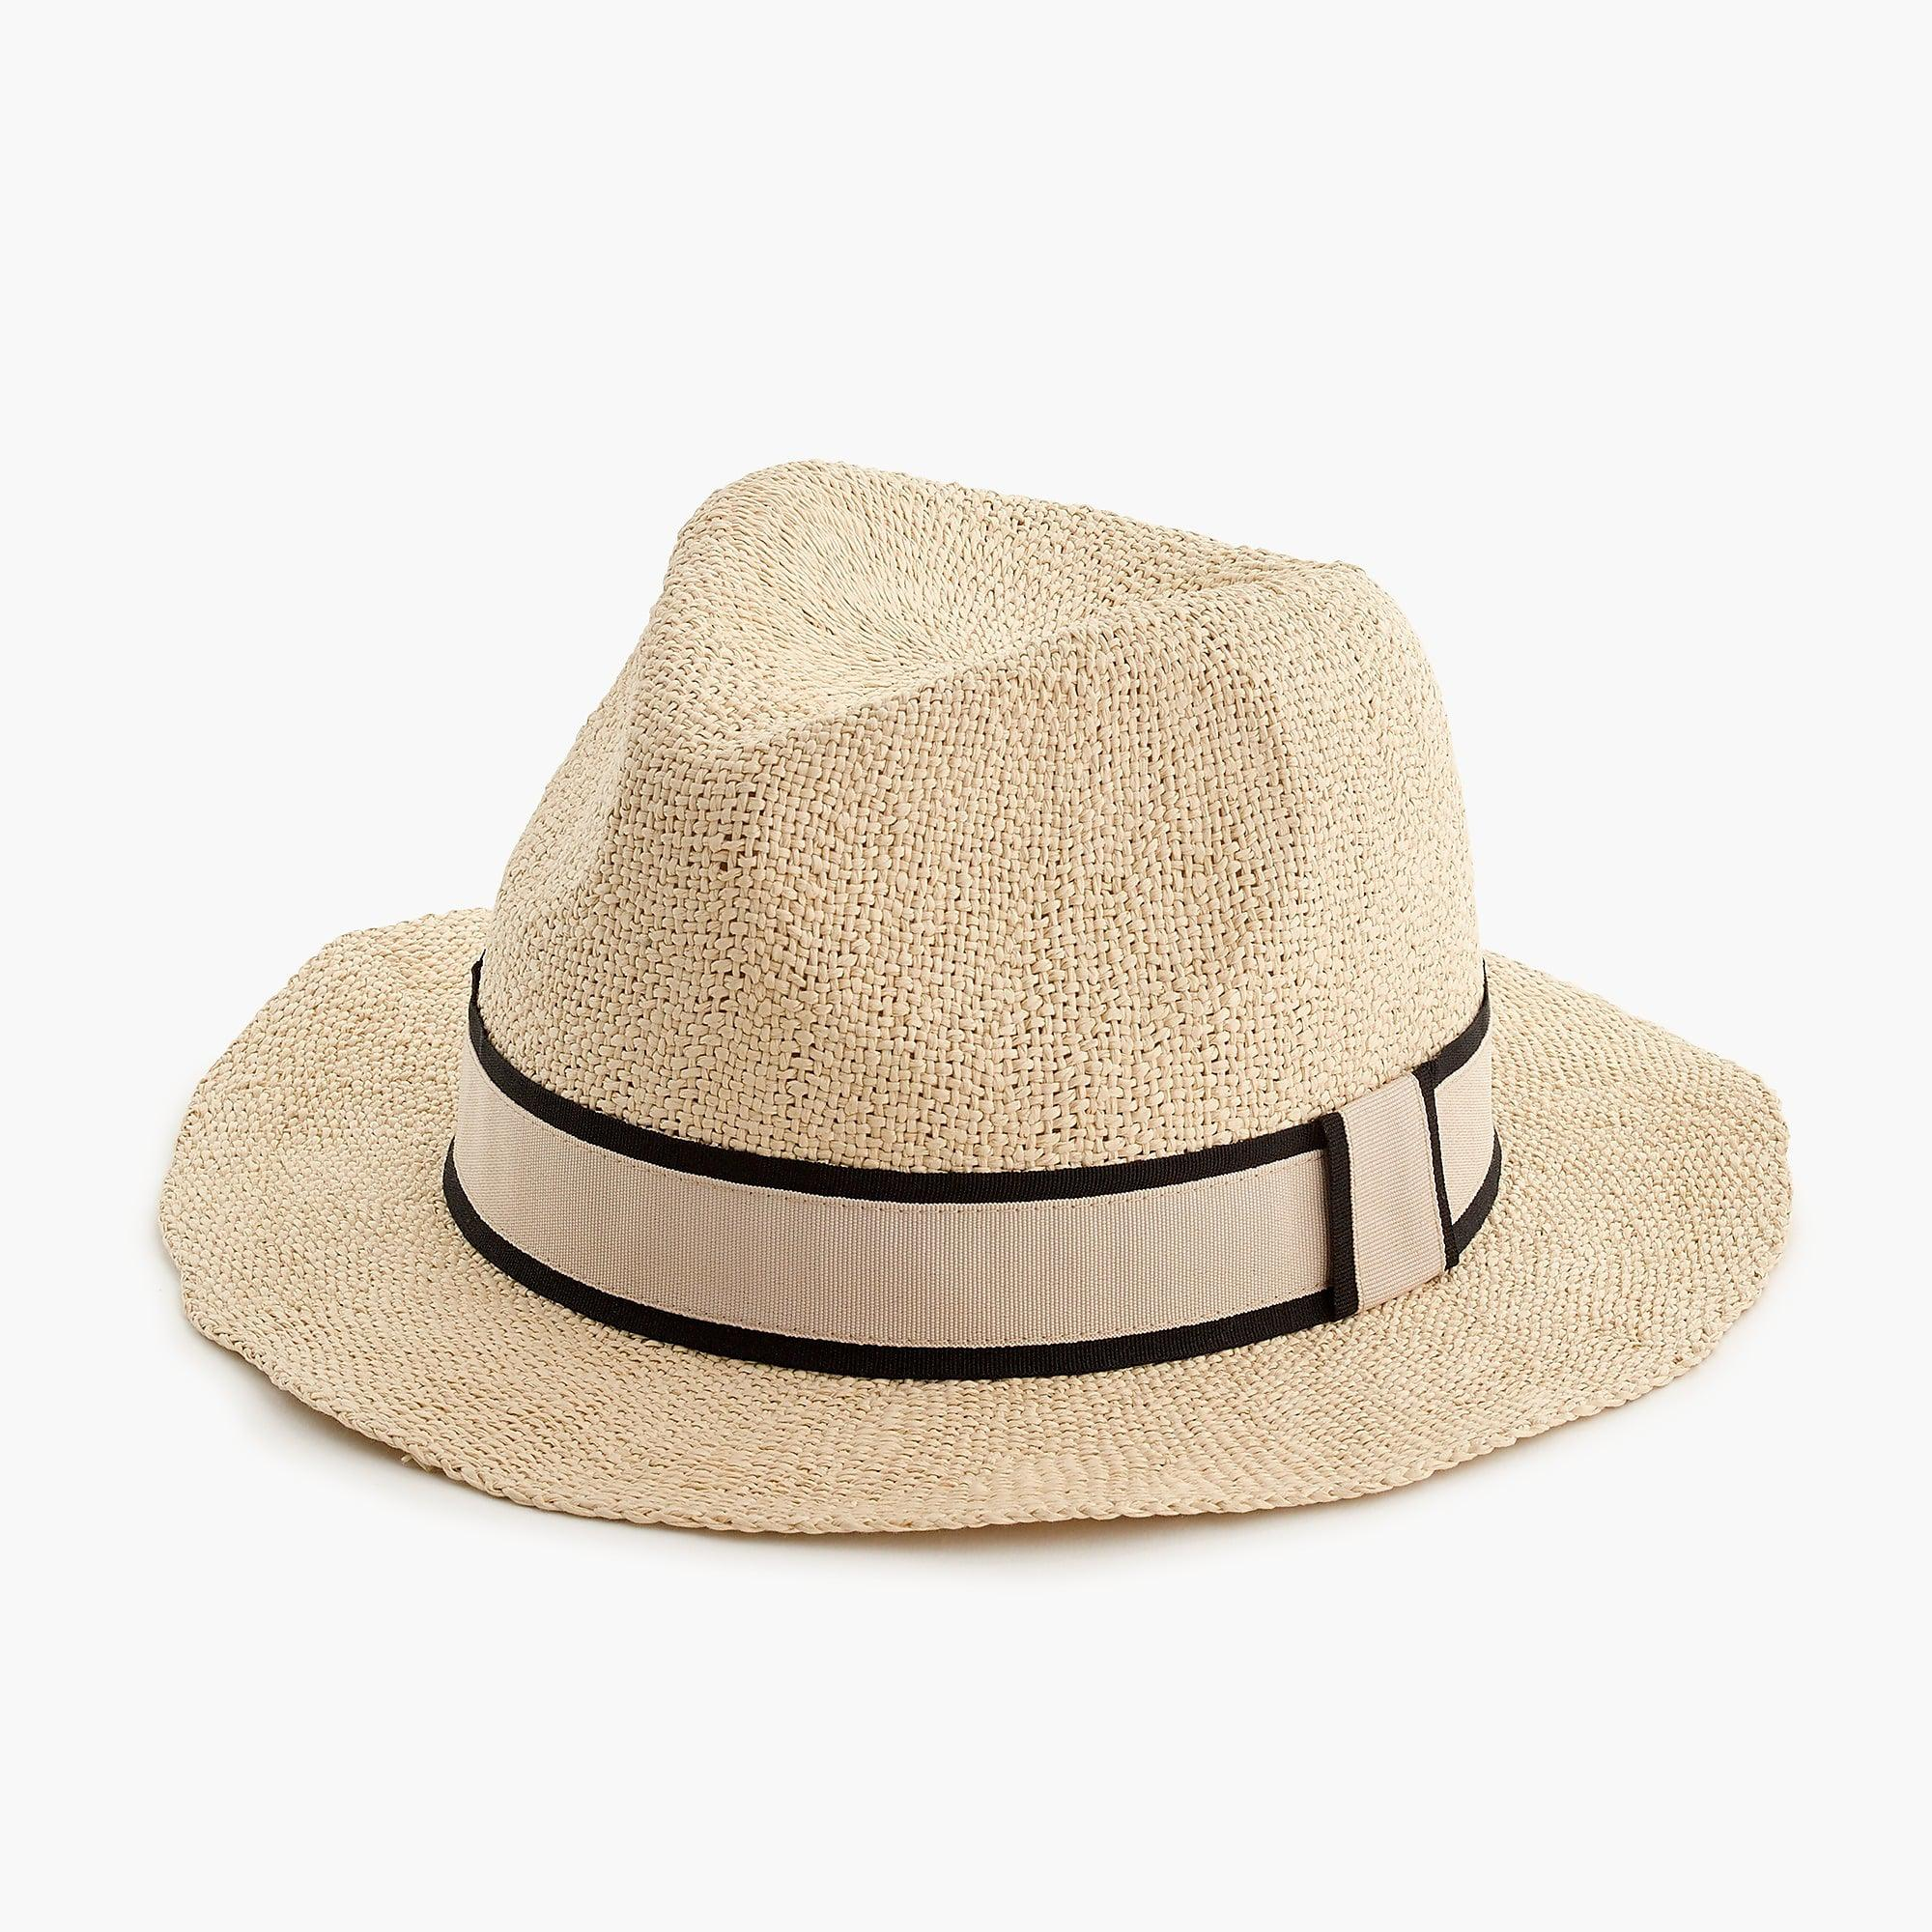 753cc029f45c J.Crew Packable Panama Hat in Natural for Men - Lyst